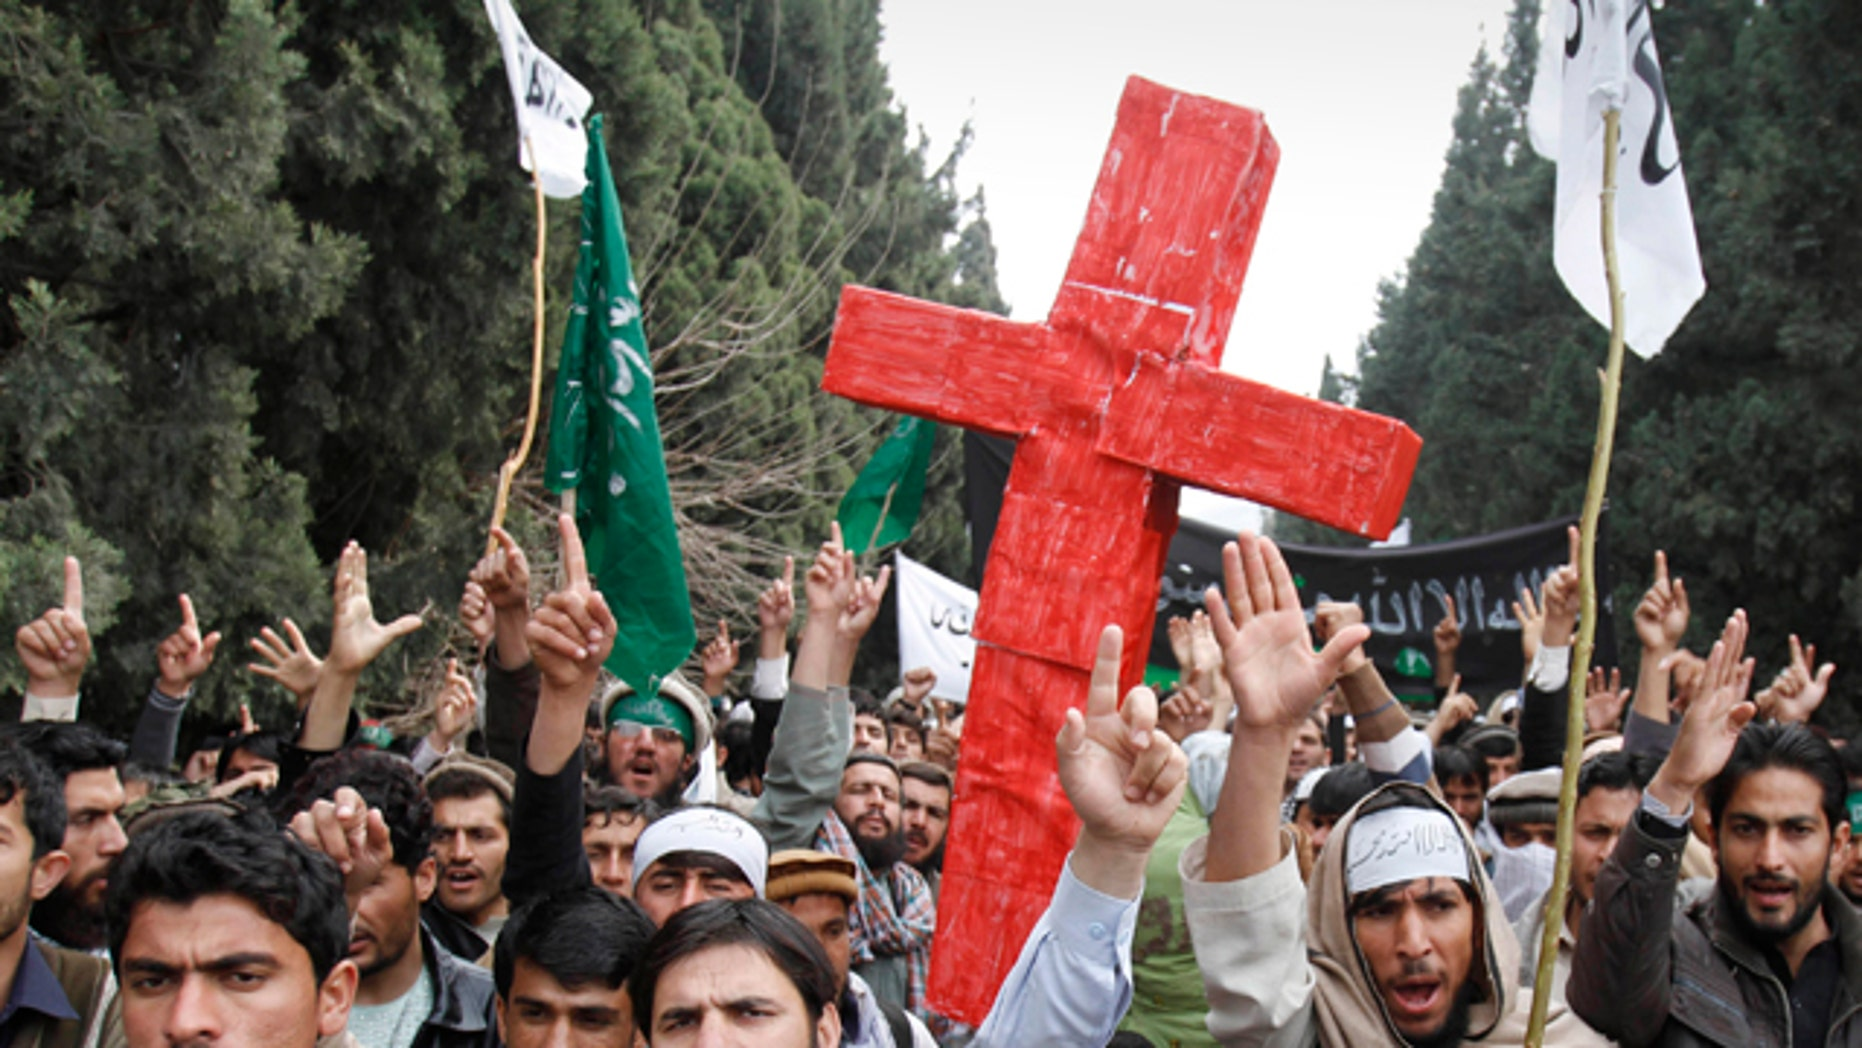 March 13, 2012: Protesters east of Afghanistan's capital of Kabul shout slogans against the United States while carrying a red cross after the killing of 16 Afghan civilians allegedly by an American soldier in Panjwai, in the province of Kandahar.